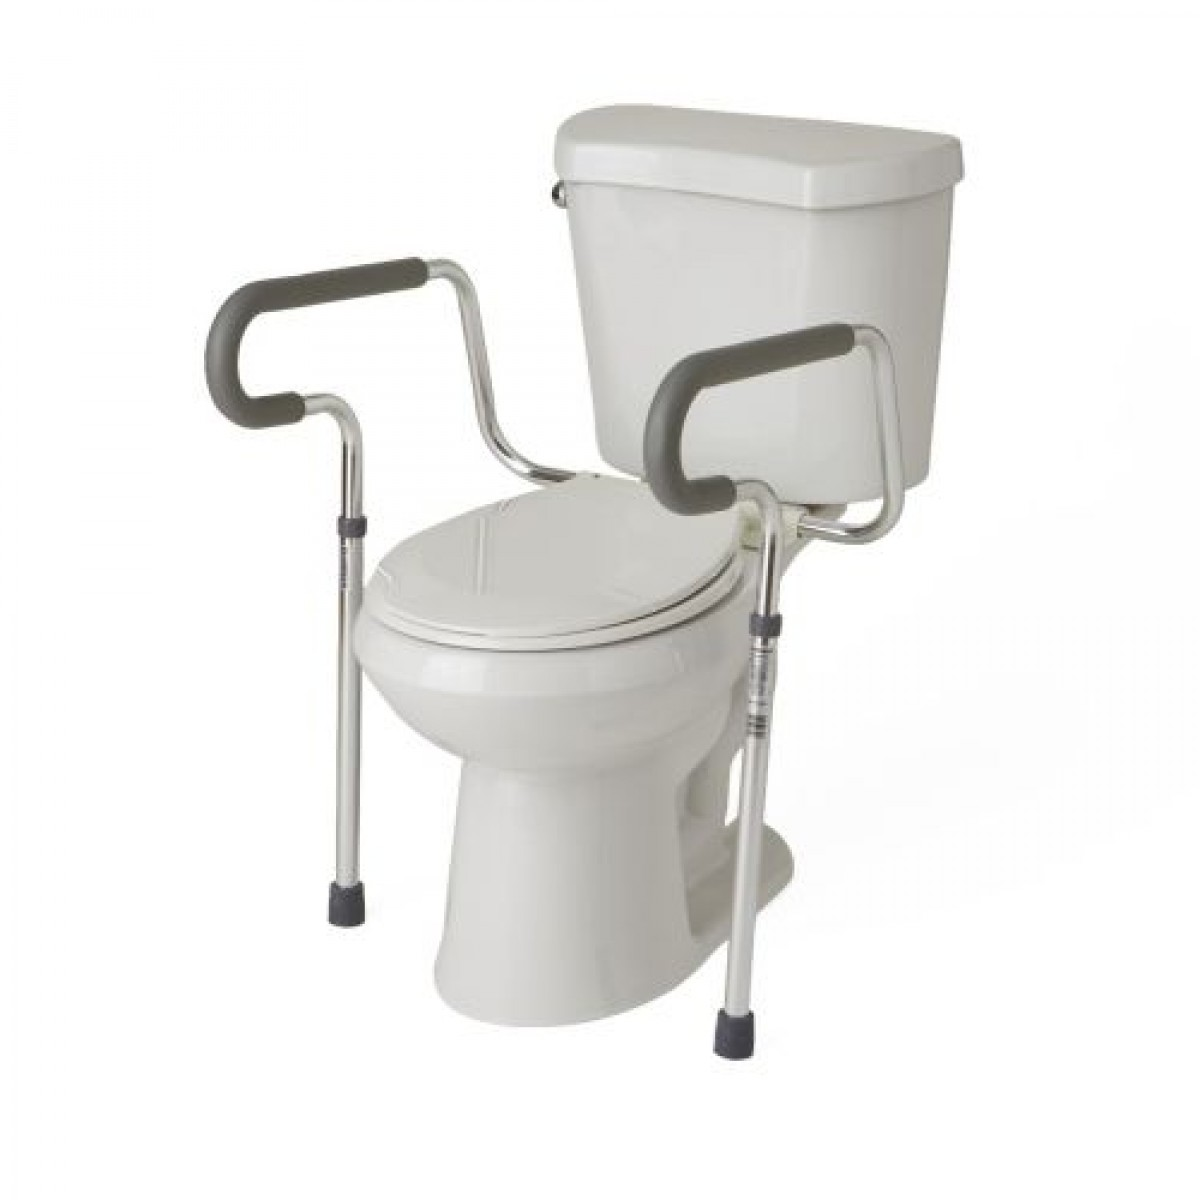 Toilet Safety Rails G30300